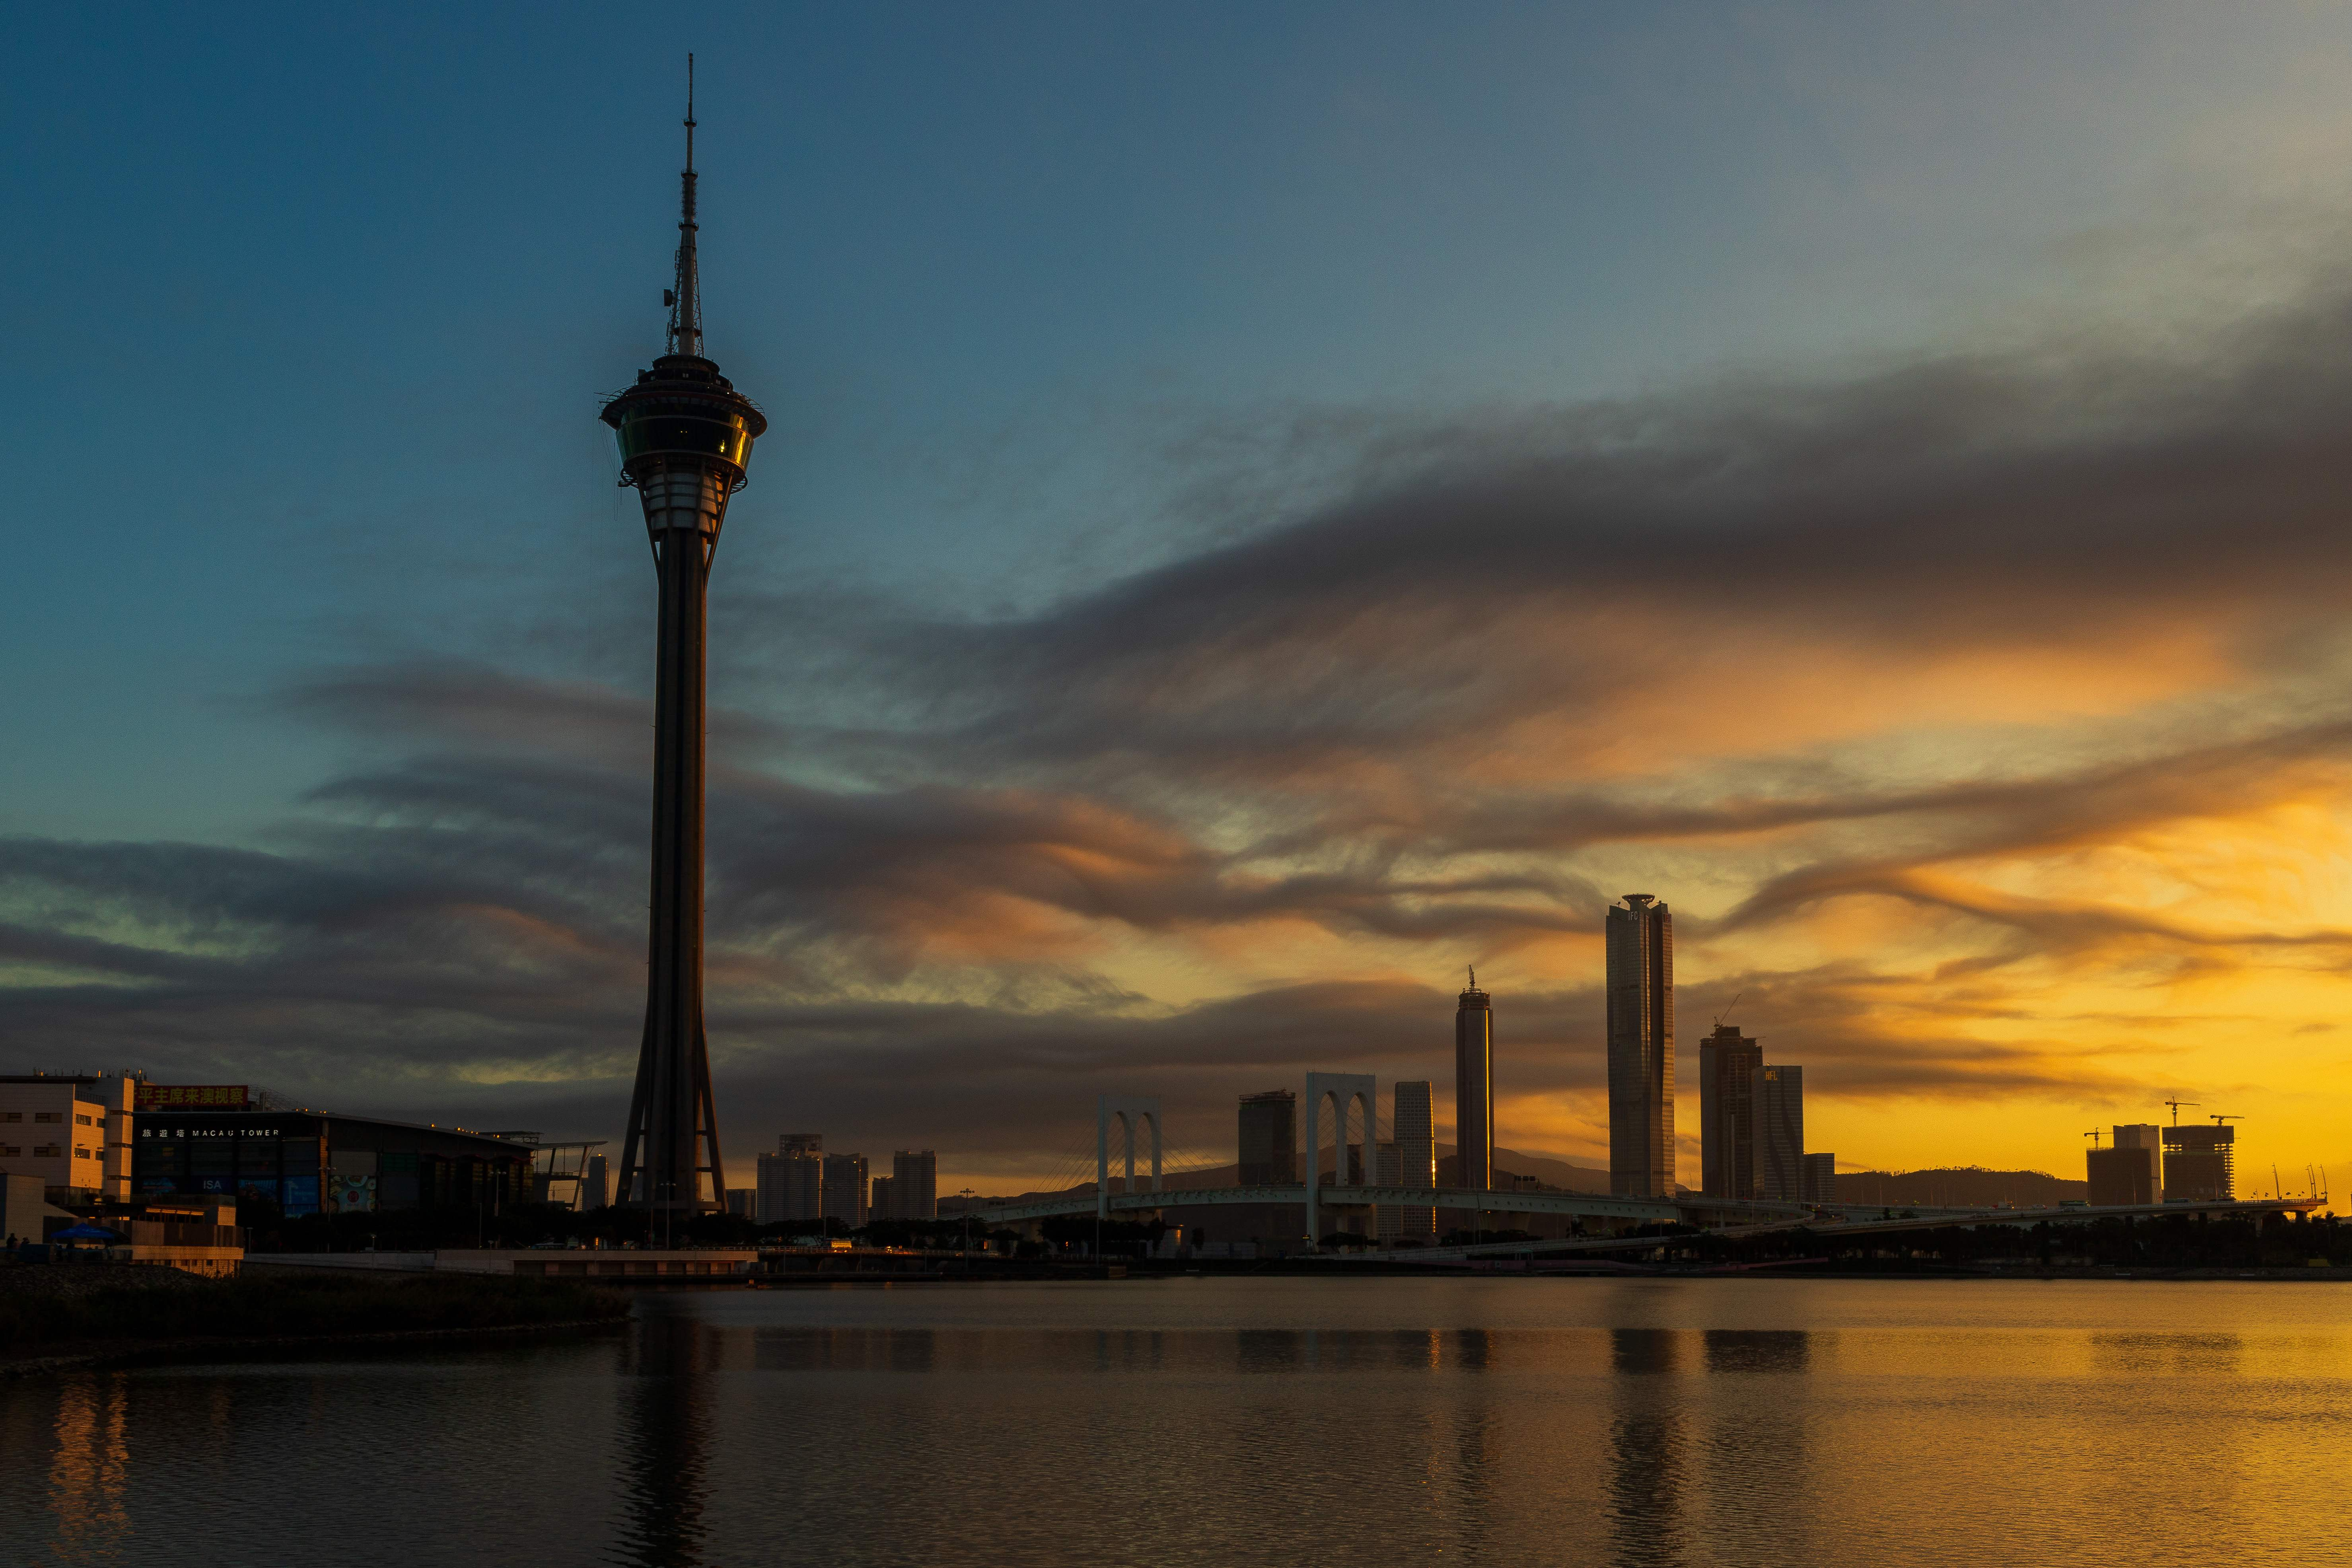 The Macau Tower (left) and the skyline is seen during sunset in Macau on December 18, 2019.